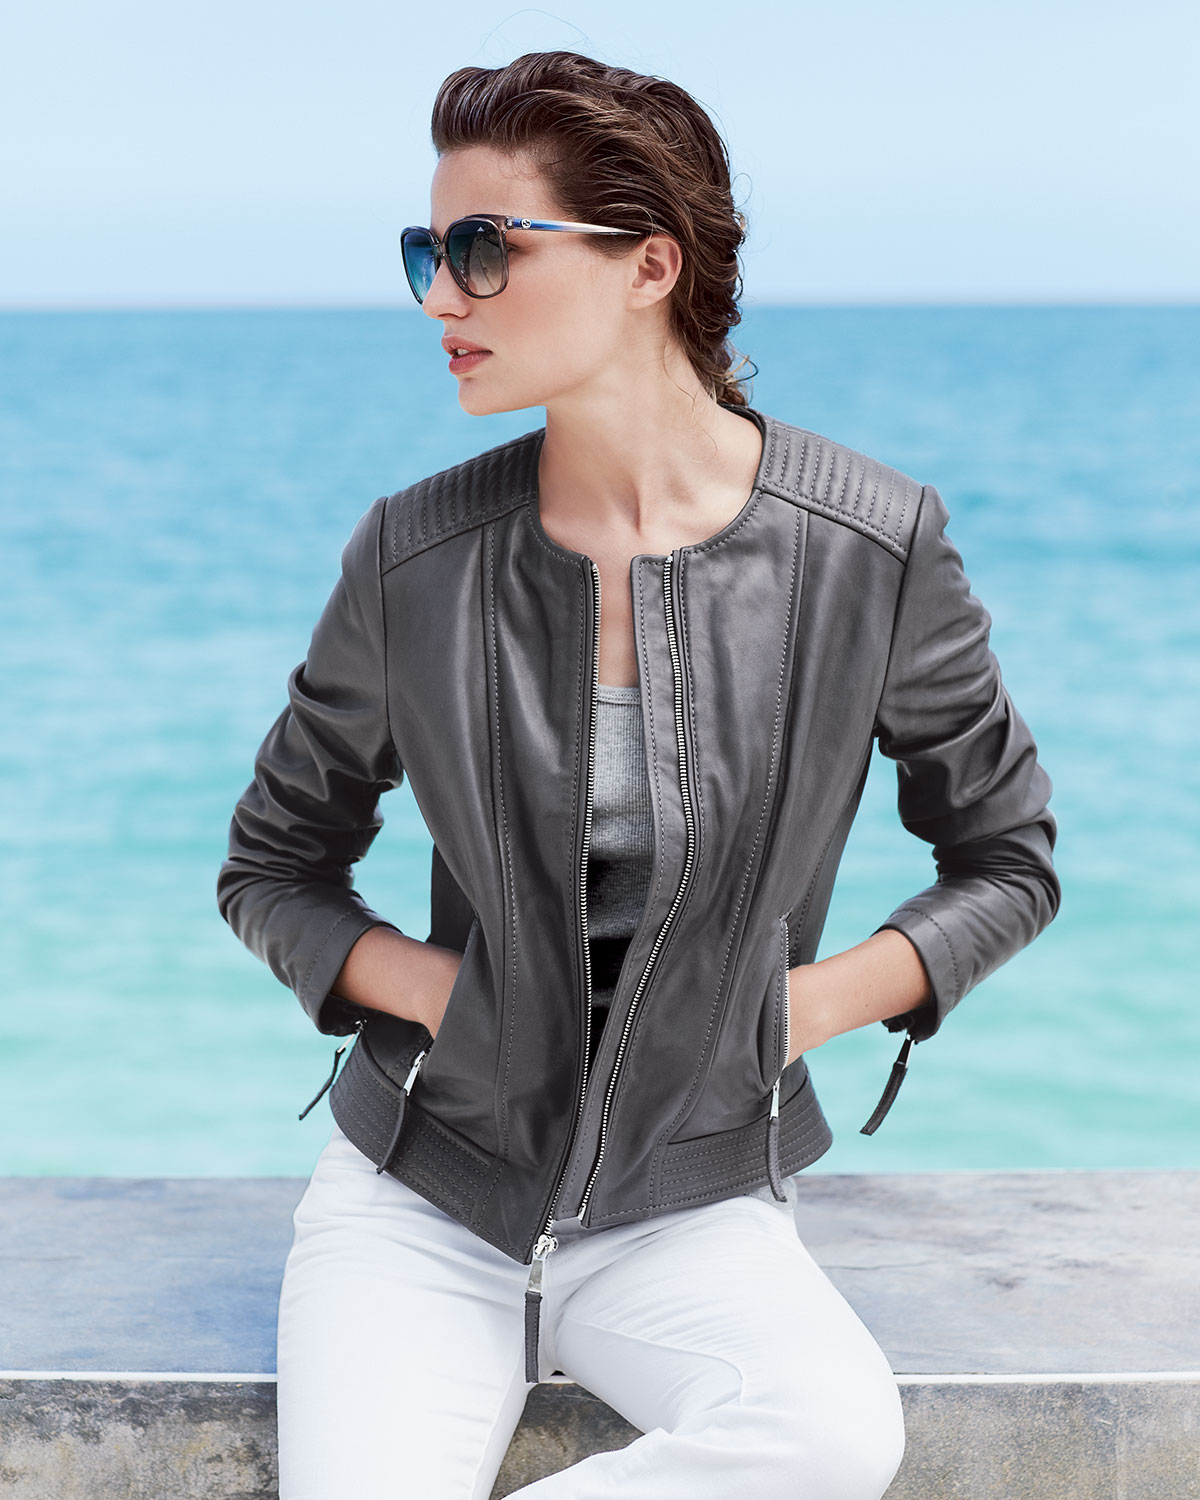 Leather jacket neiman marcus